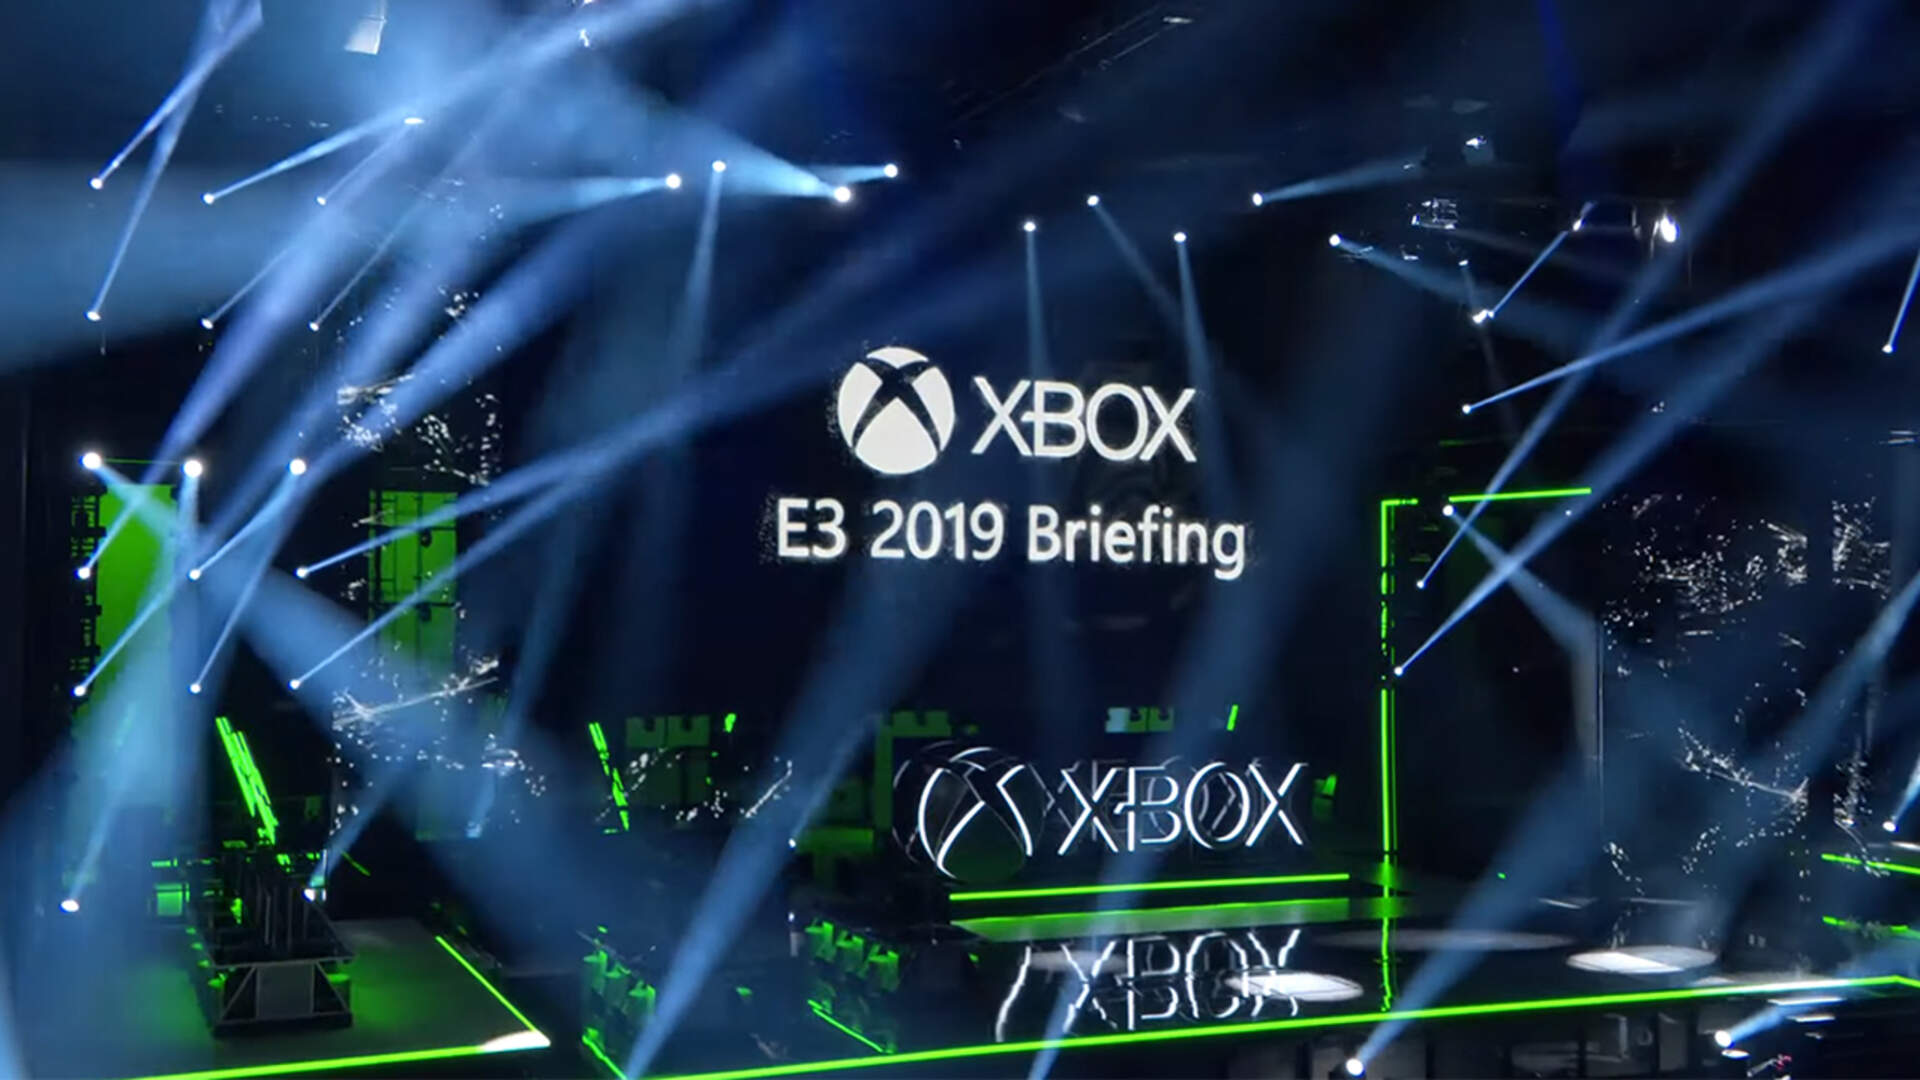 Phil Spencer Responds to PlayStation Skipping E3 2020